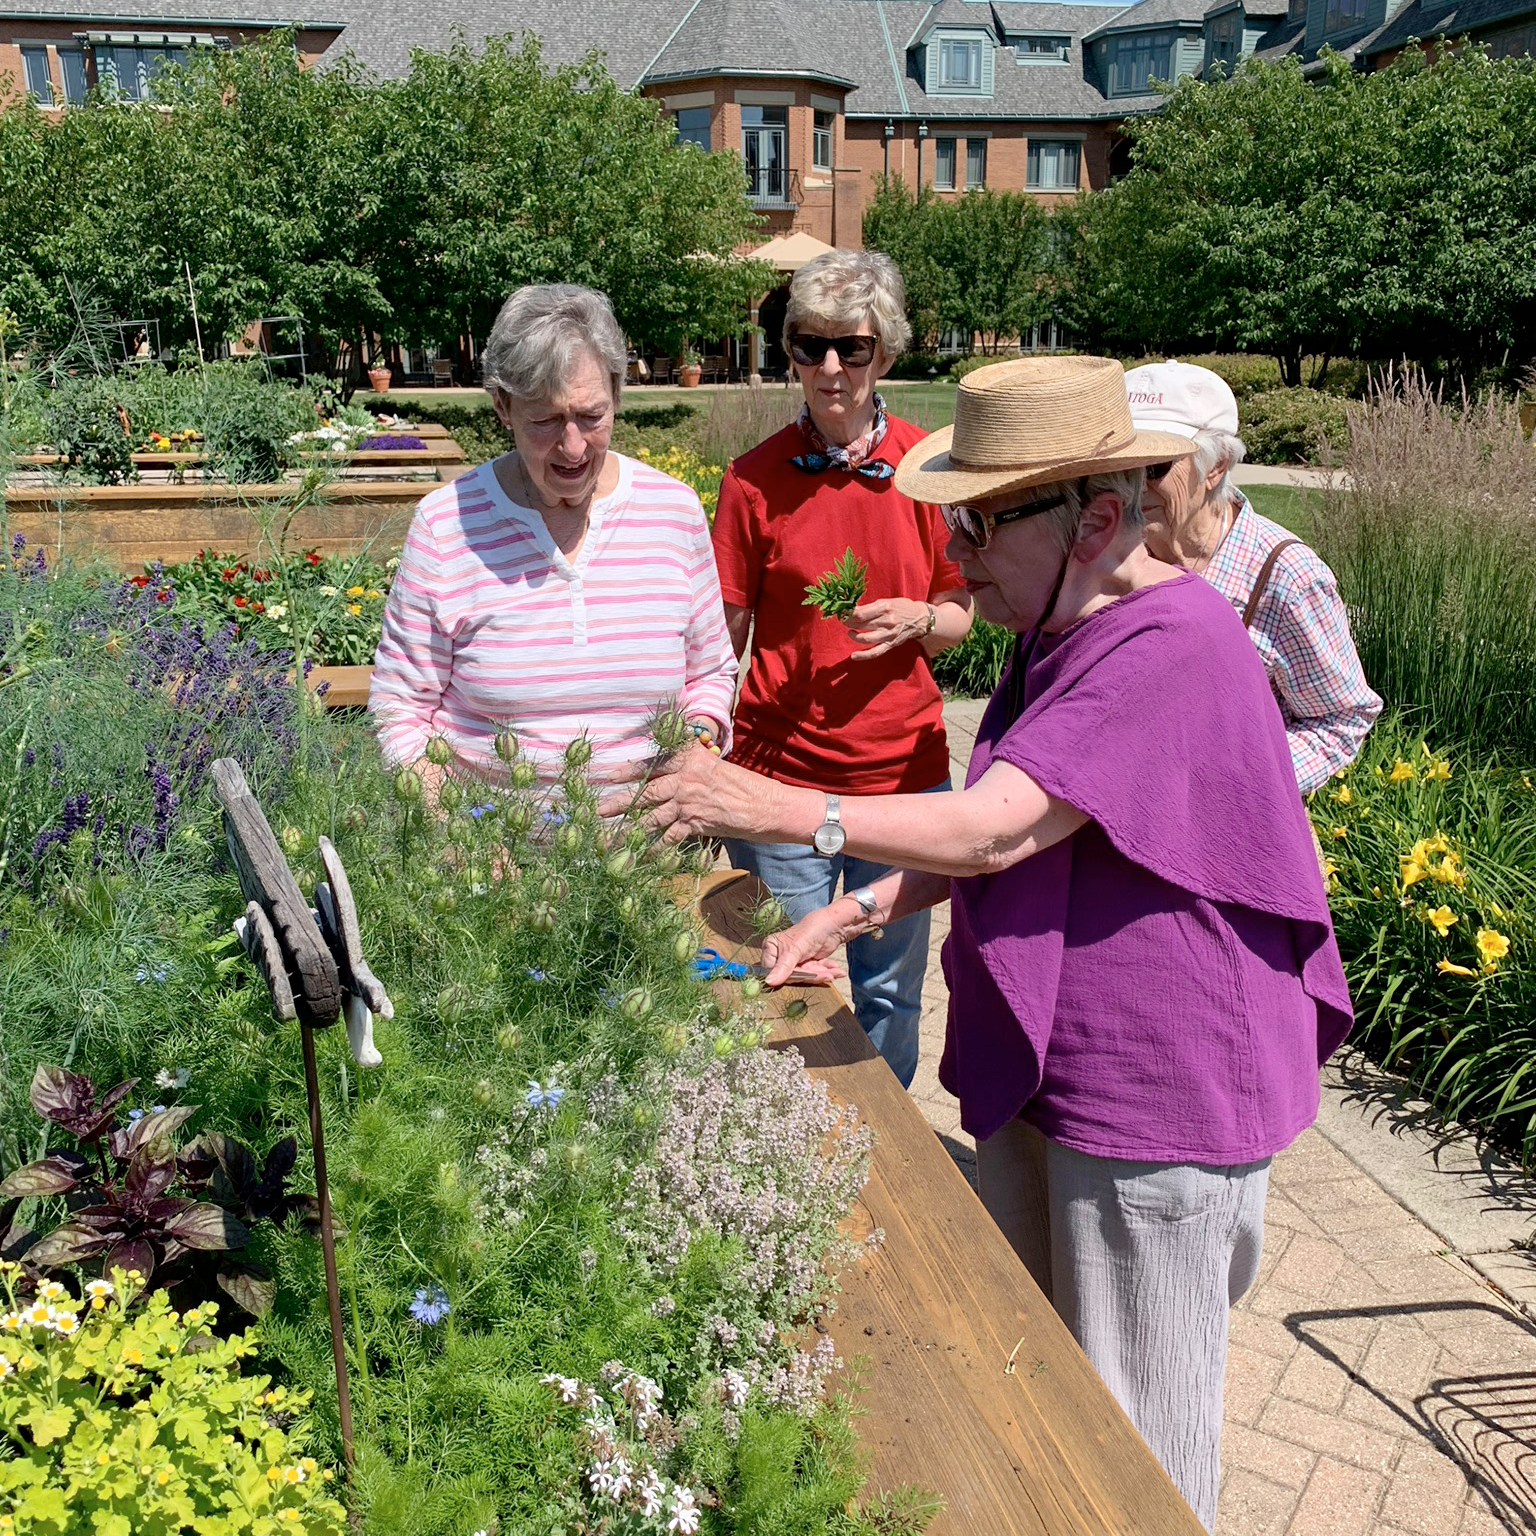 Avid gardeners tend to the many raised beds at The Garlands.